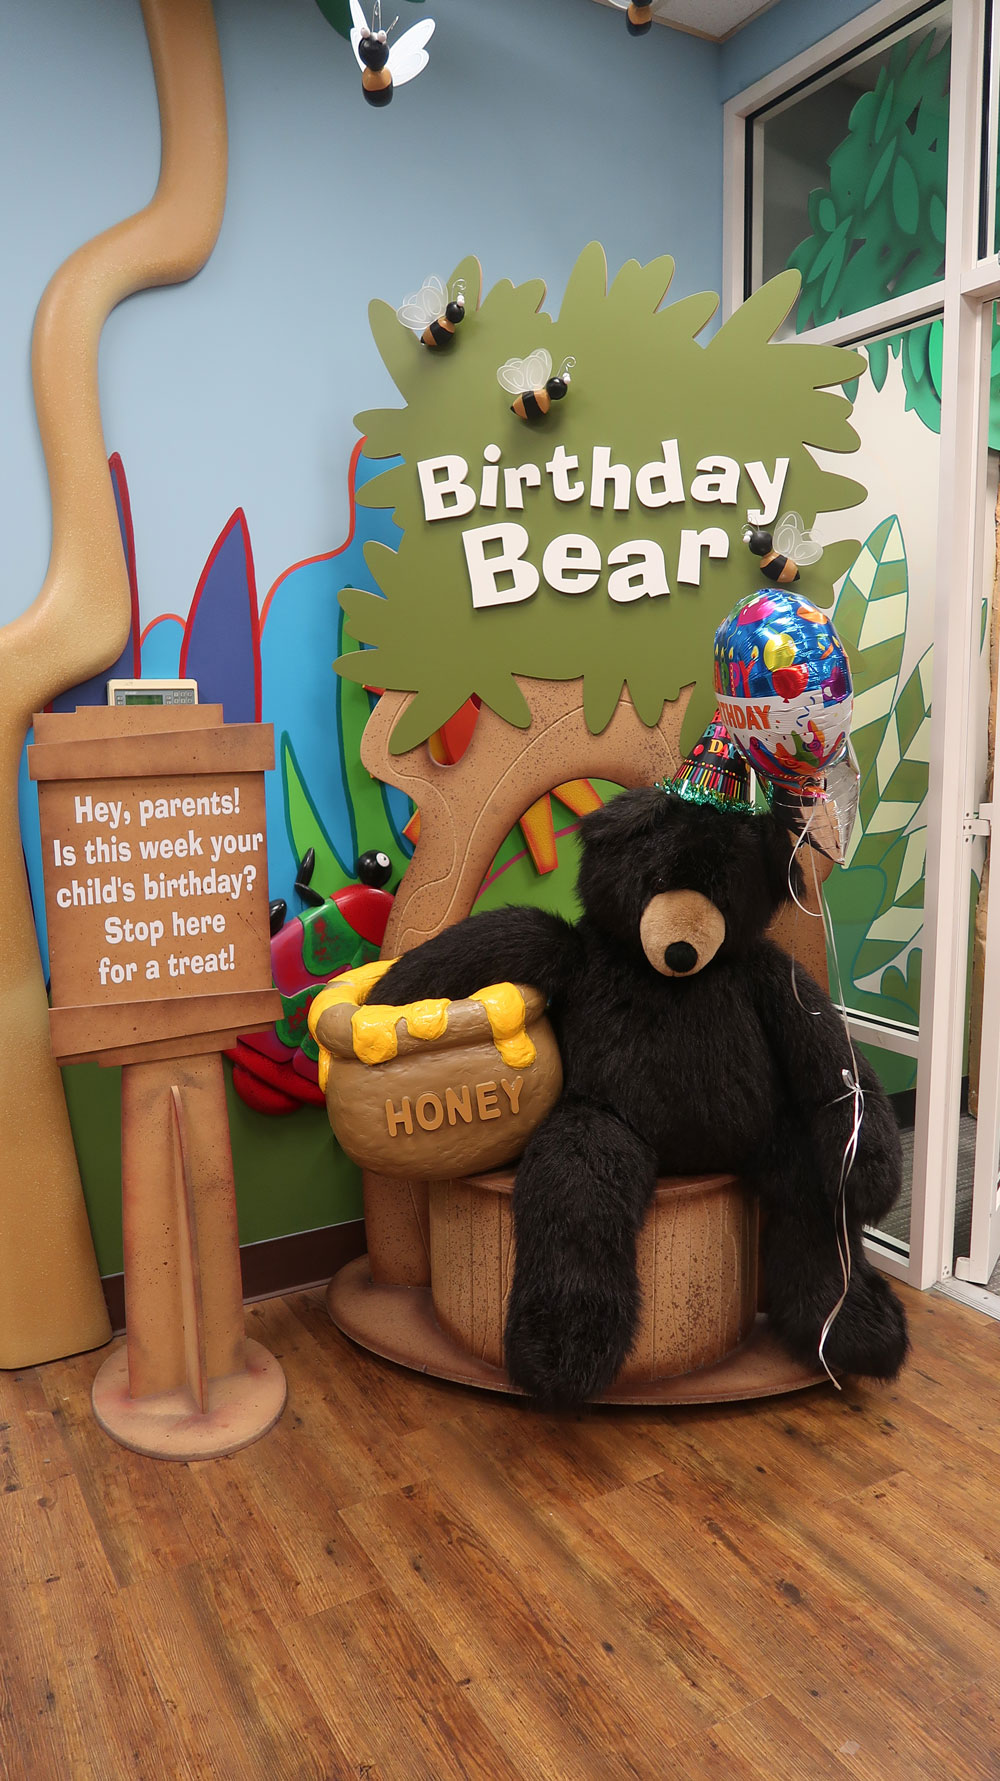 Birthday Bear Display